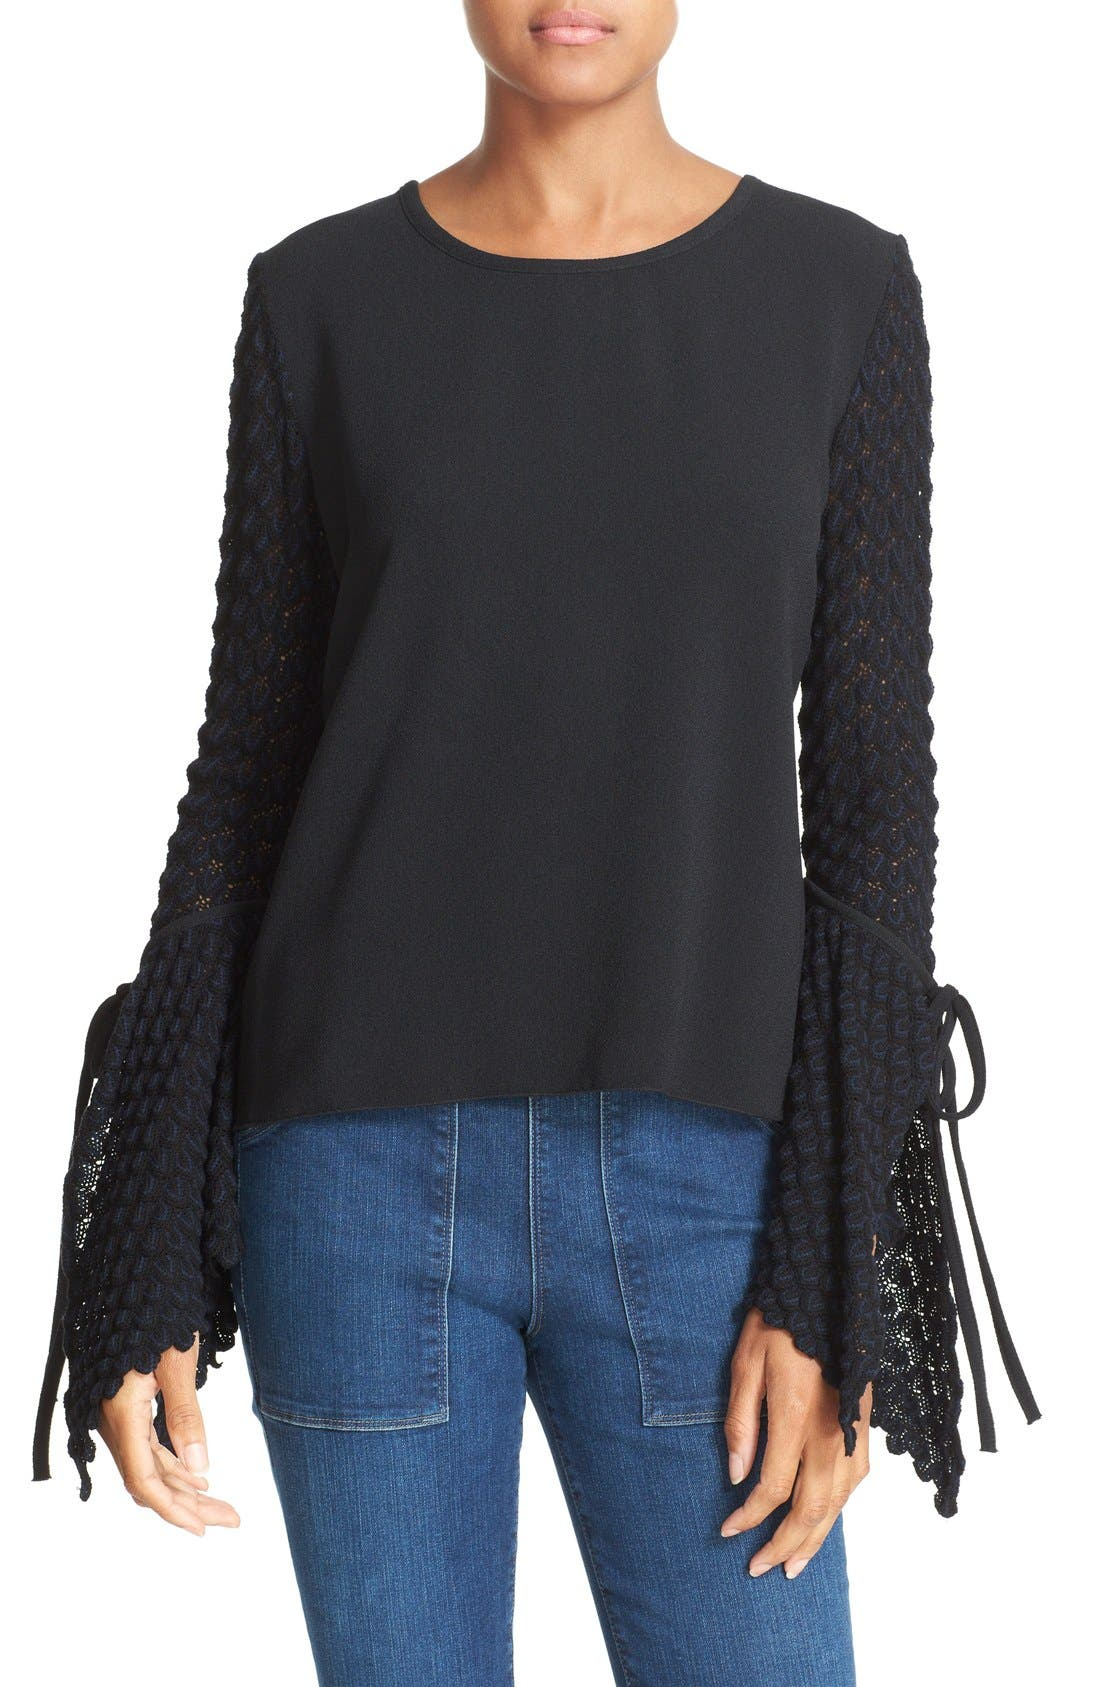 SEE BY CHLOÉ Knit Bell Sleeve Top